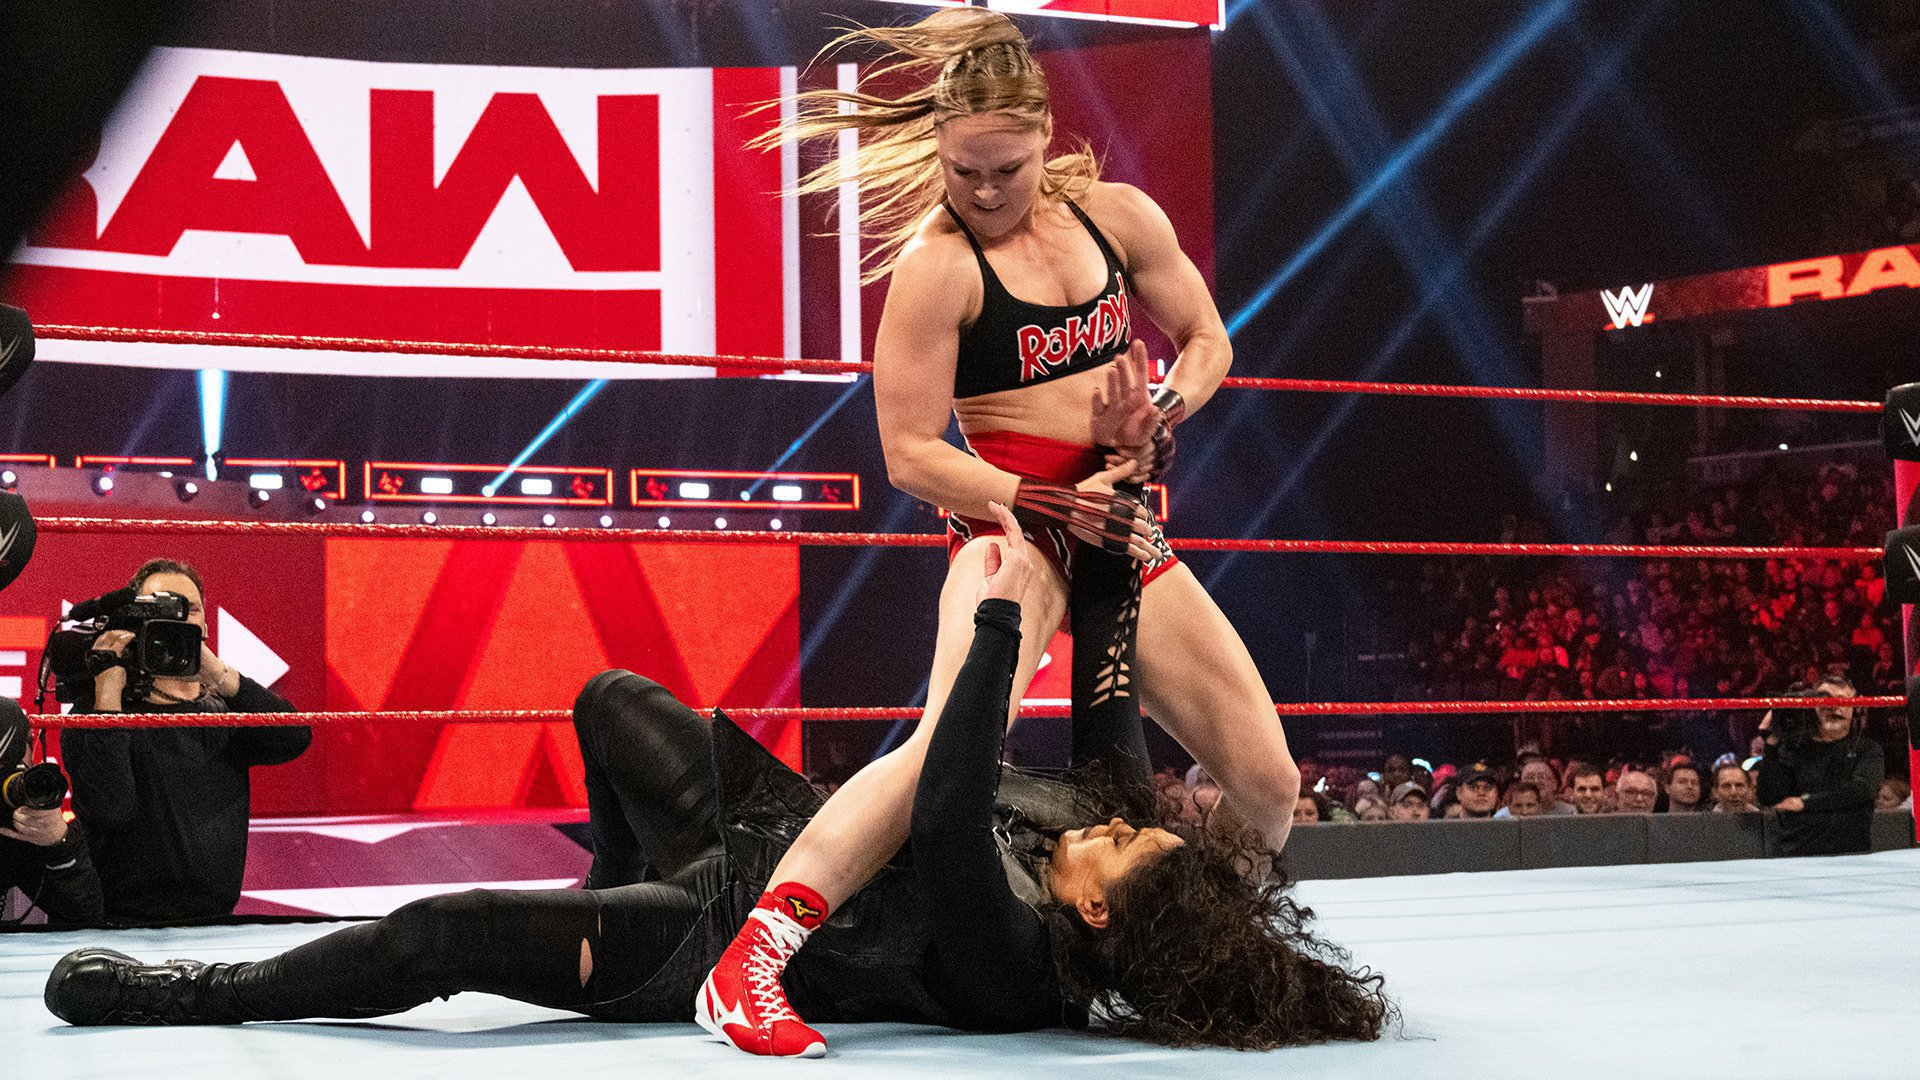 Ronda Rousey's WWE Contract Expire During Wrestlemania 37 Week 2